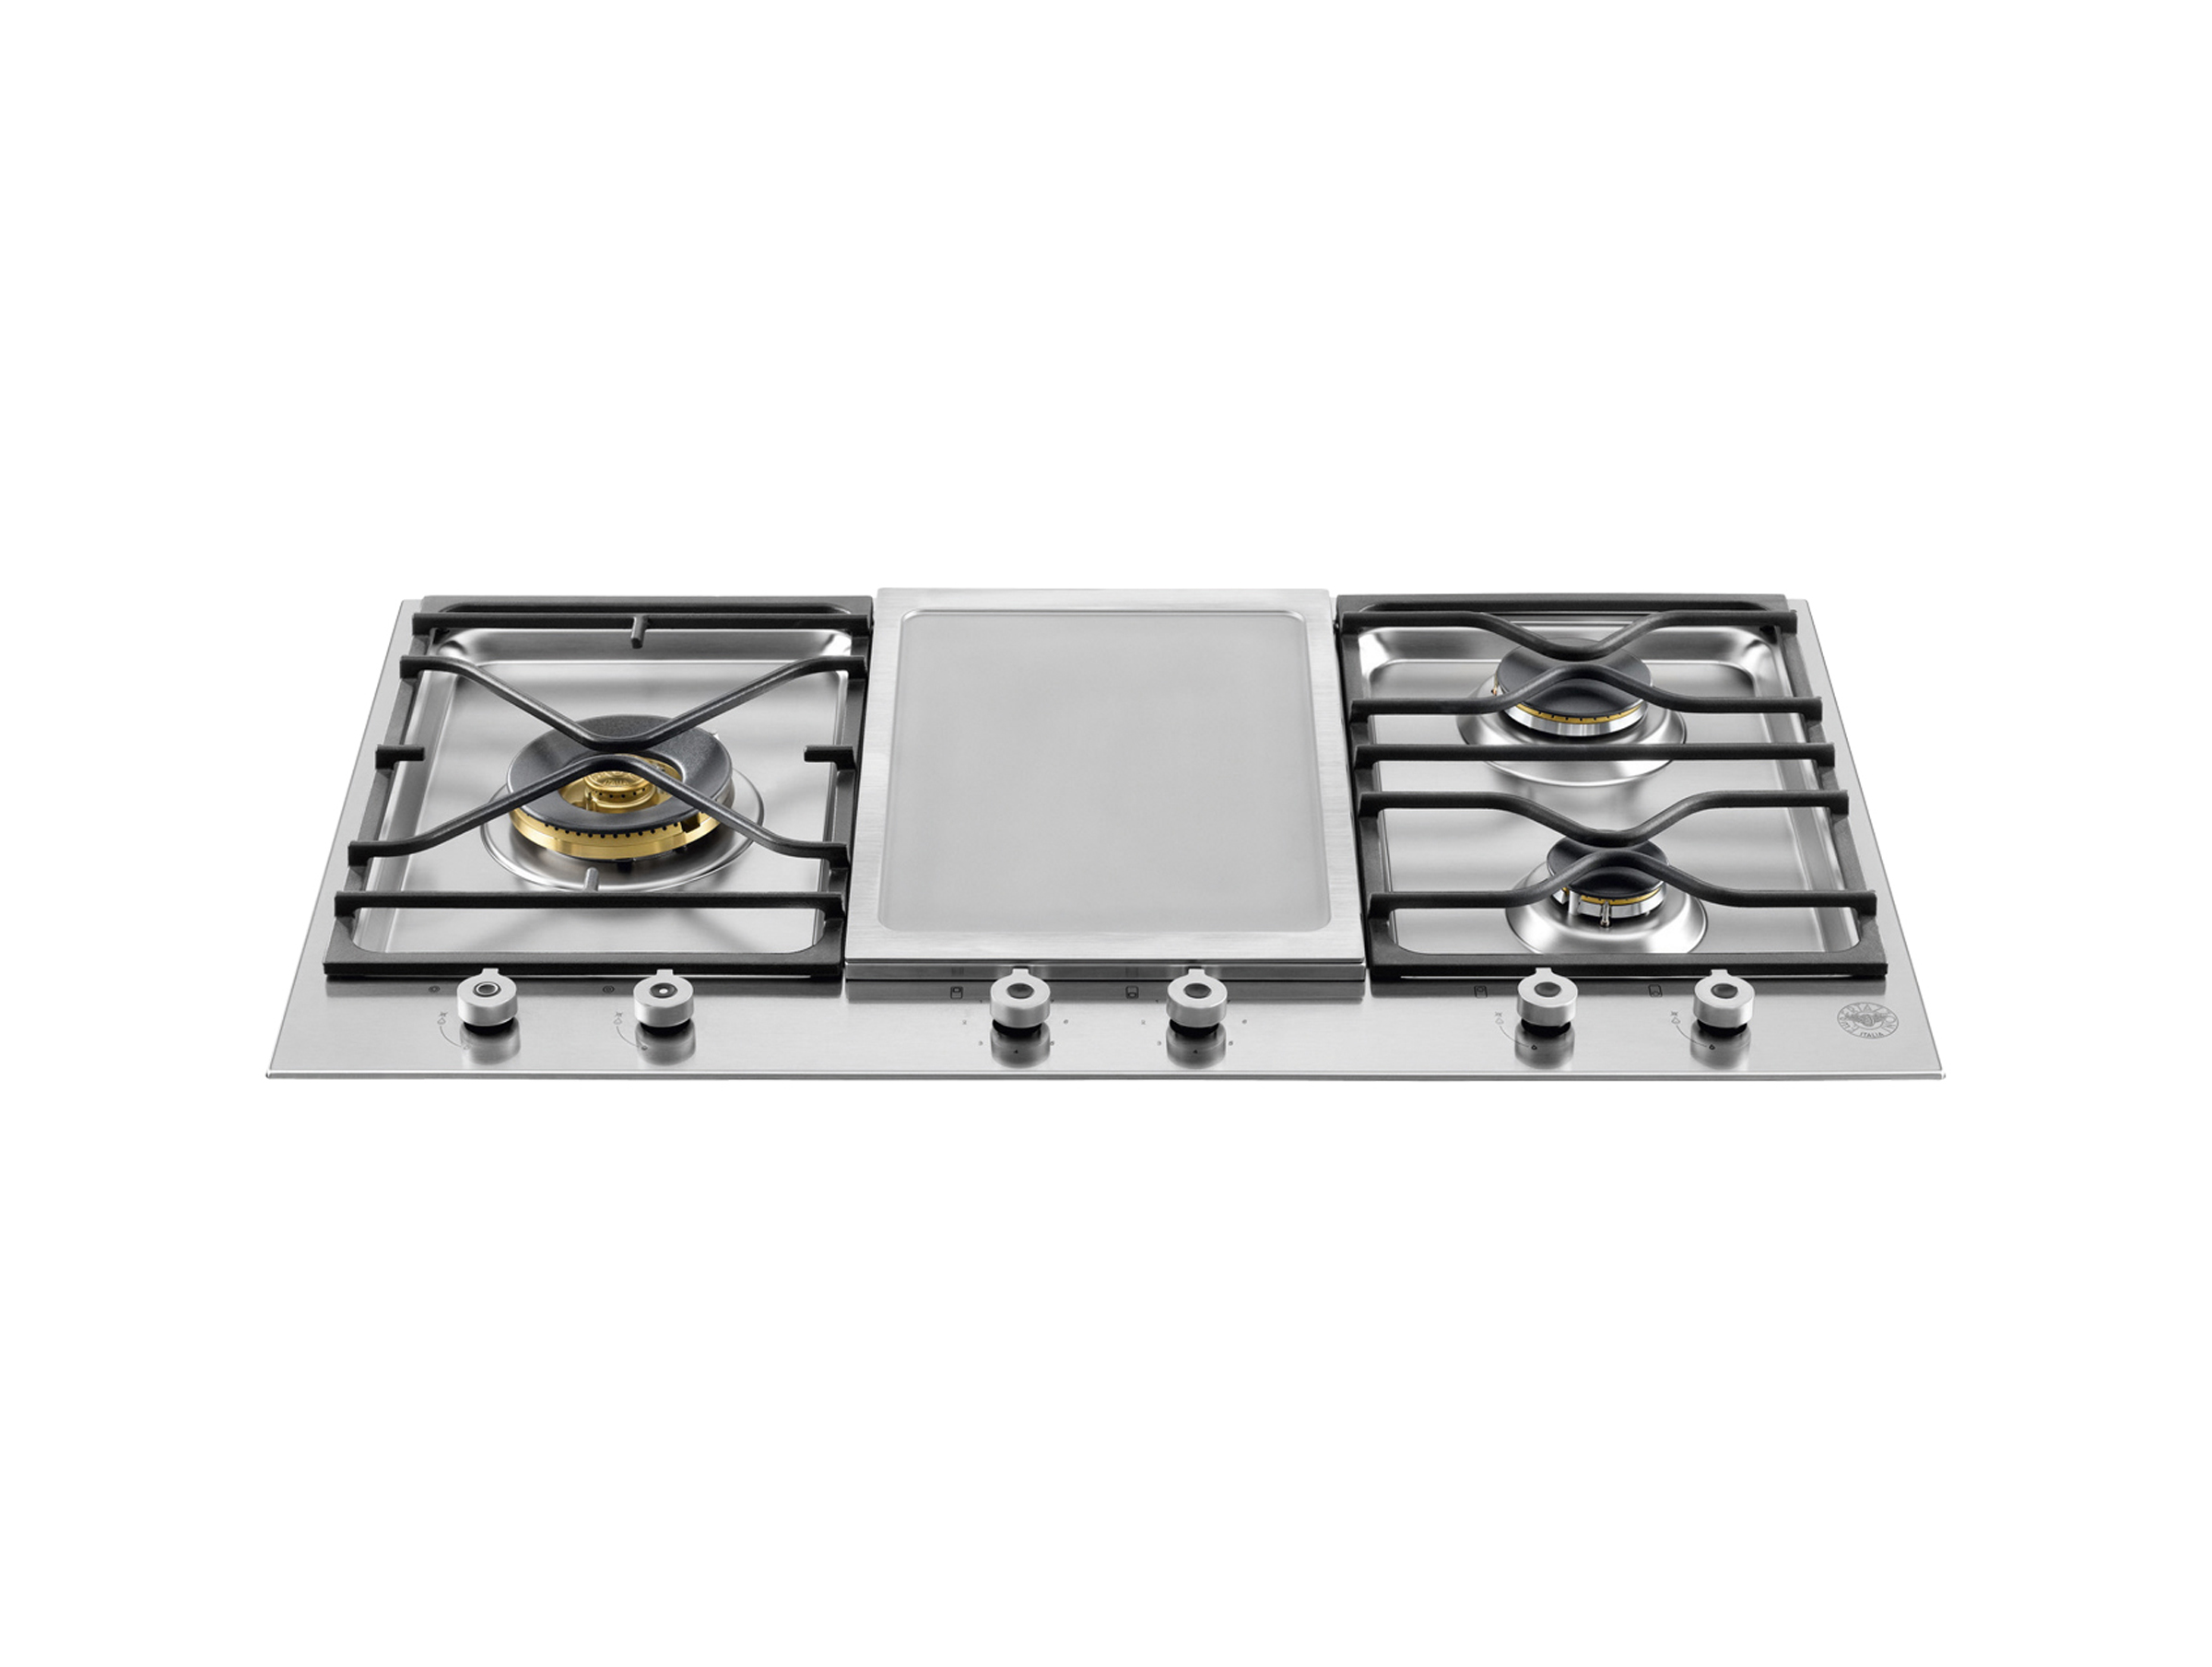 36 Segmented cooktop 3-burner and griddle | Bertazzoni - Stainless